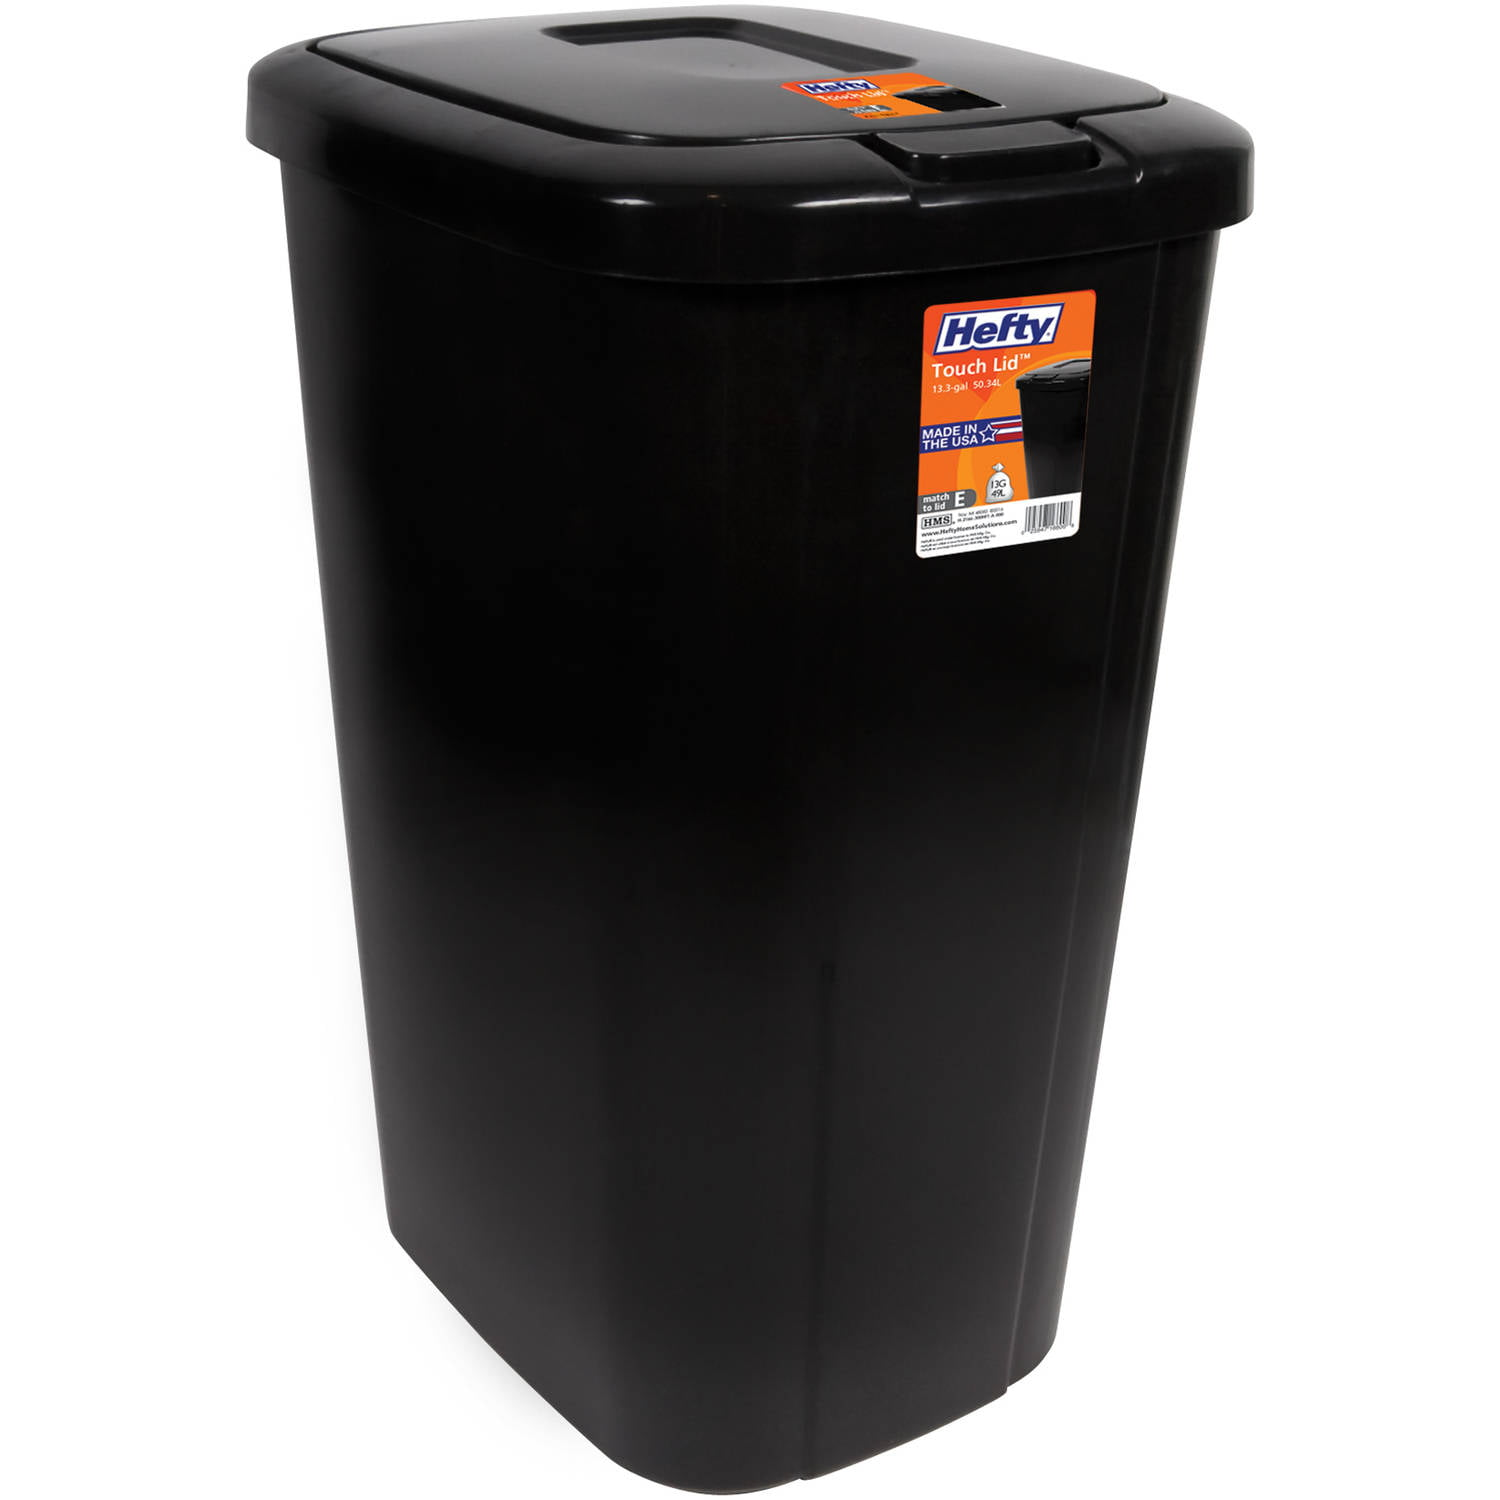 Click here to buy Hefty Touch-Lid 13.3-Gallon Trash Can, Black by H M S Mfg. Co..